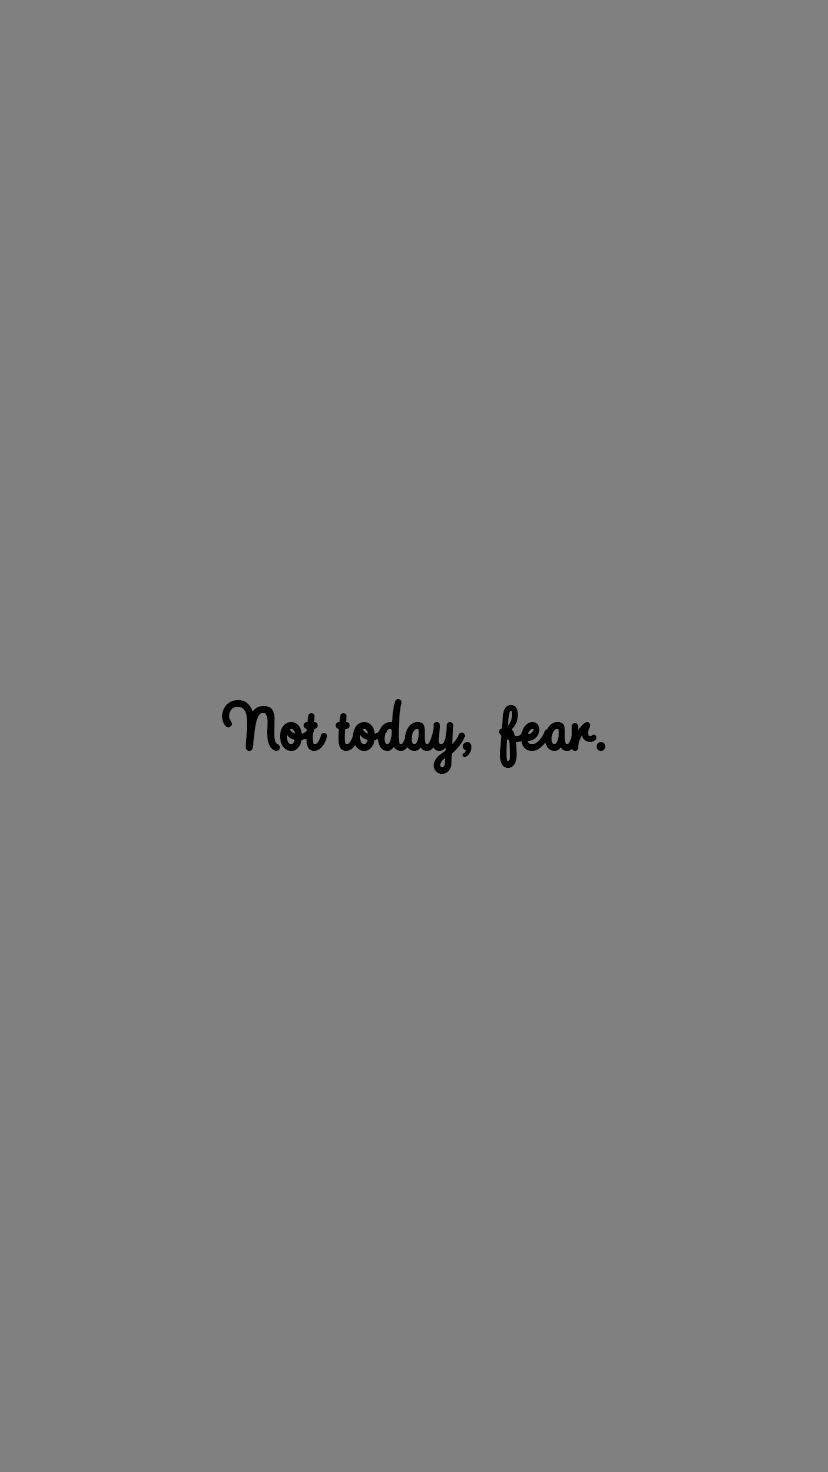 not-today-fear-iphone.png